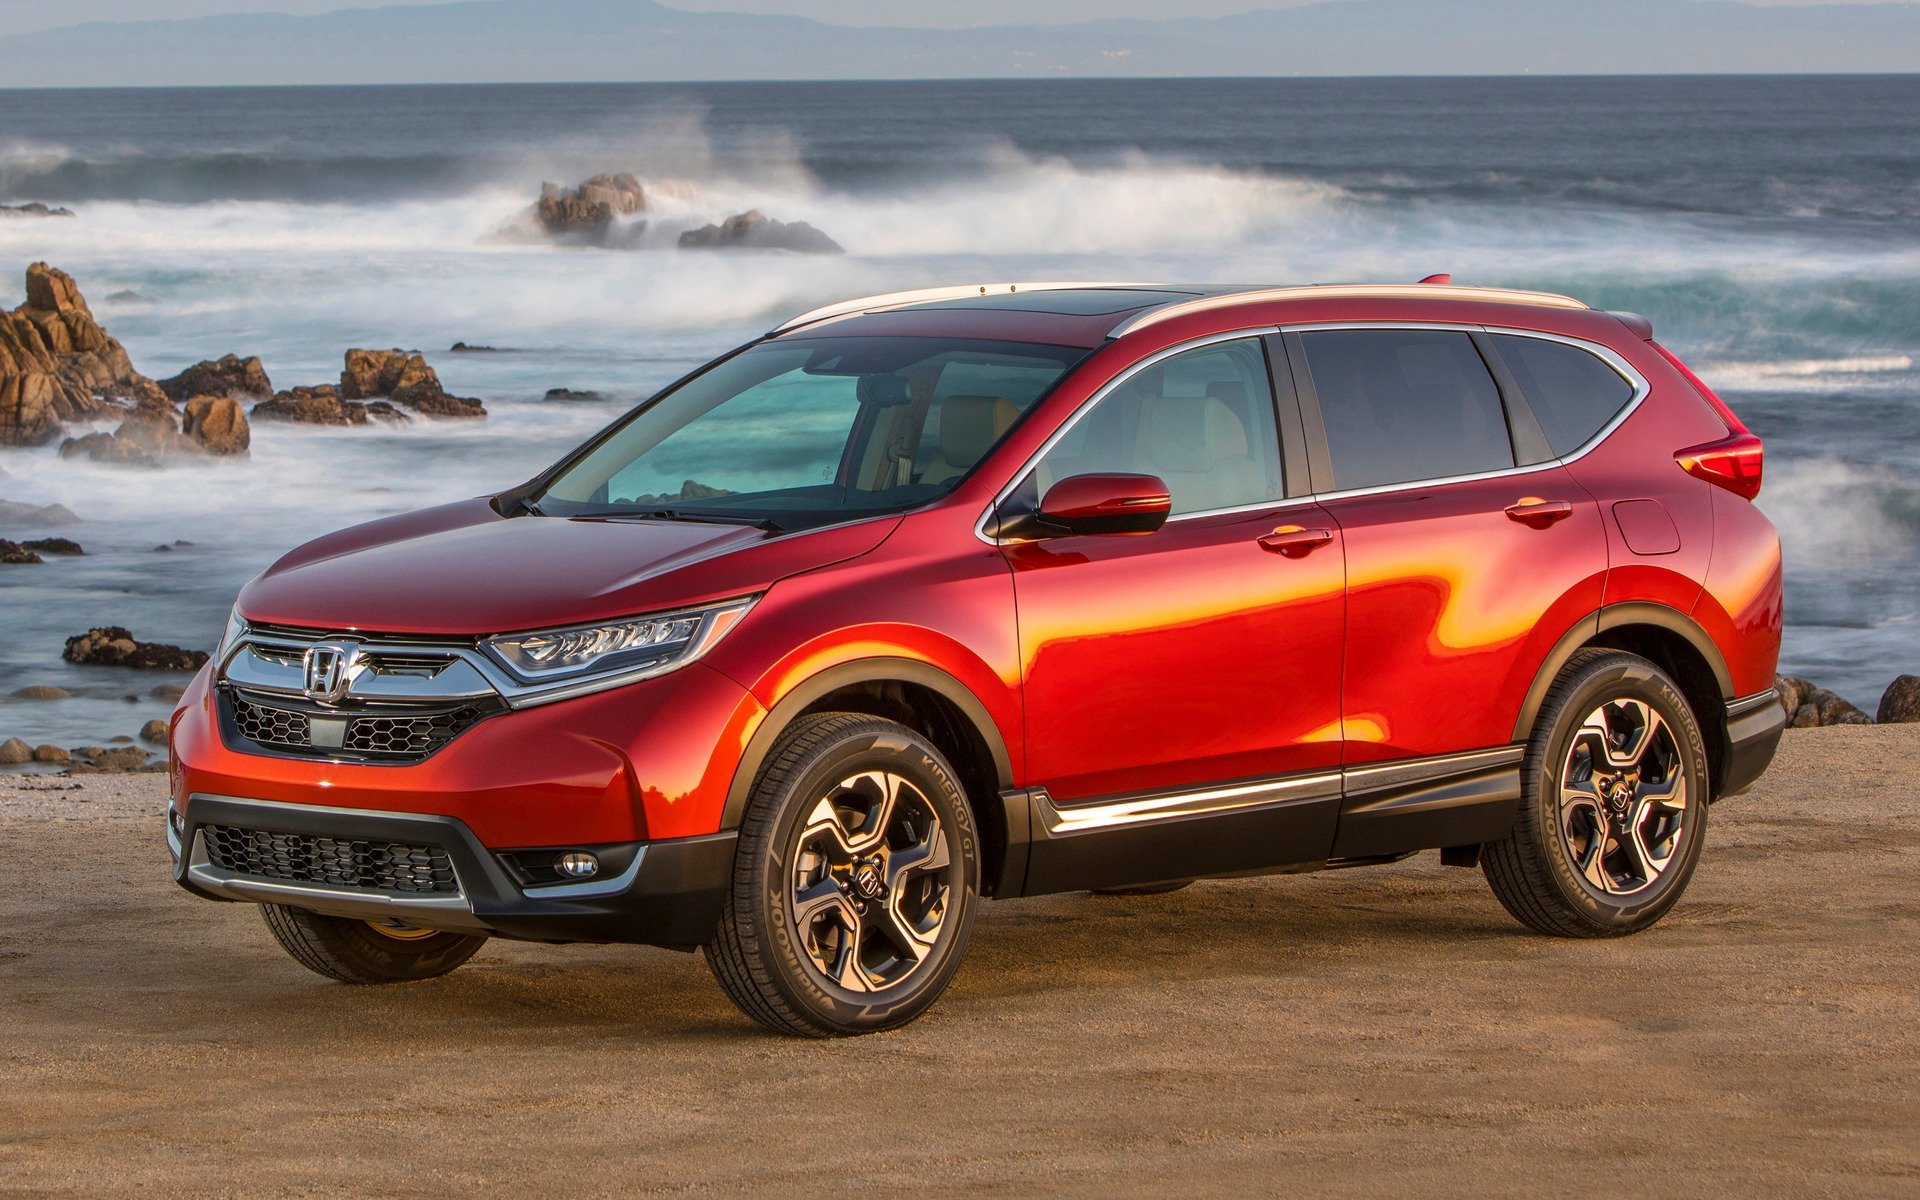 Honda CR-V Best-selling SUVs